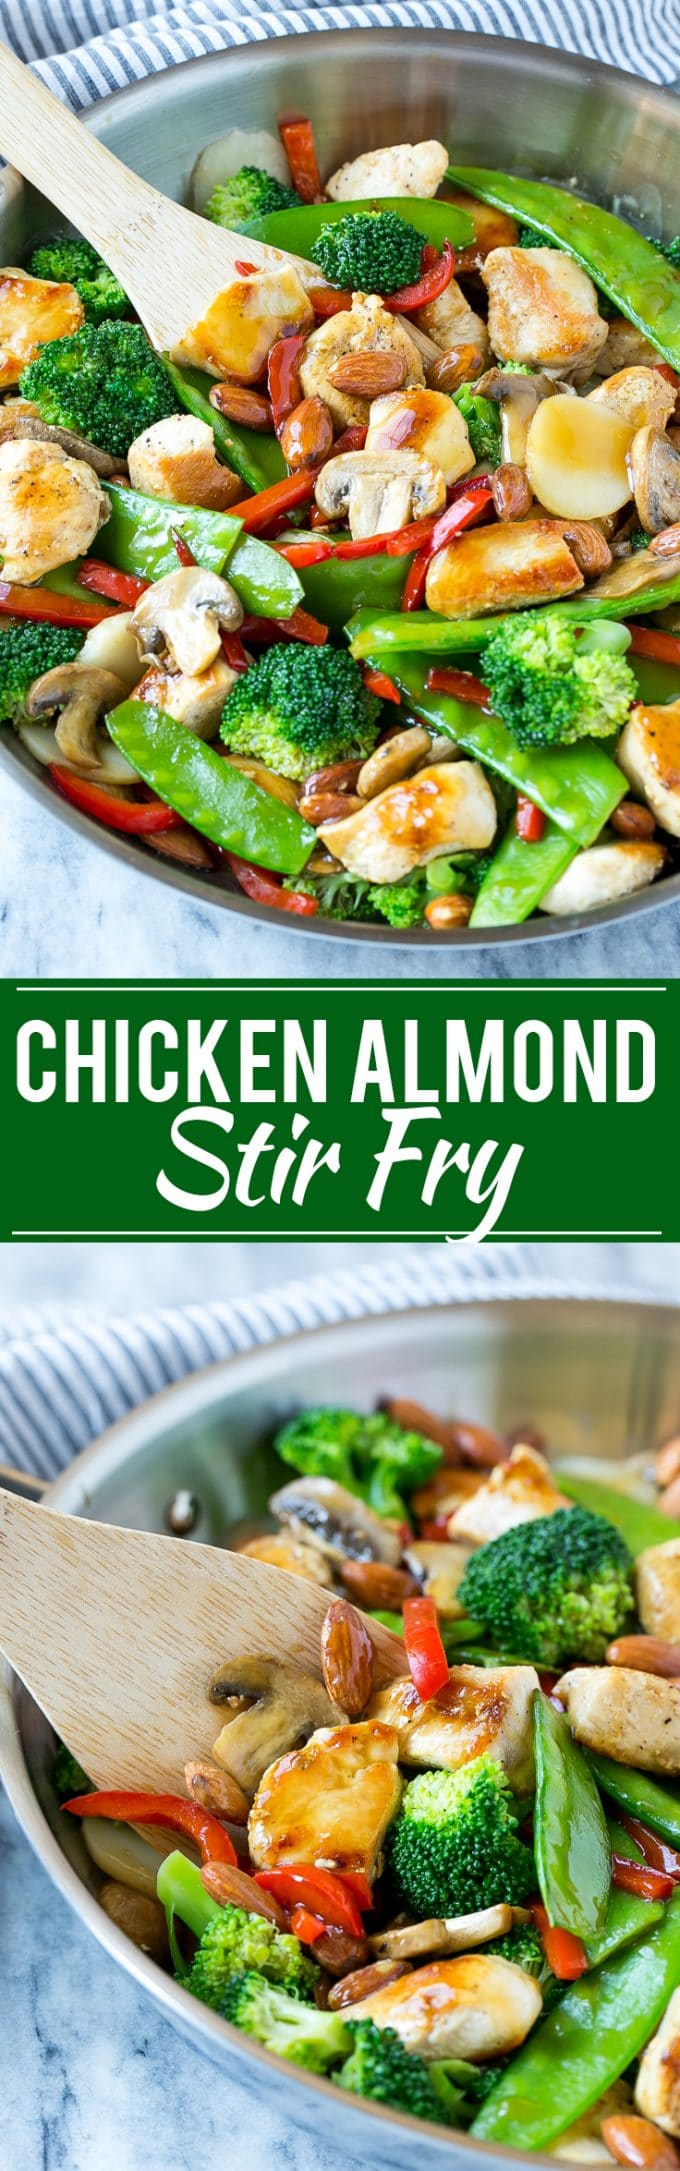 Almond Chicken Stir Fry Recipe | Chicken Almond Ding | Healthy Chicken Recipe | Almond Chicken | Chicken Stir Fry #chicken #stirfry #almonds #veggies #dinner #dinneratthezoo